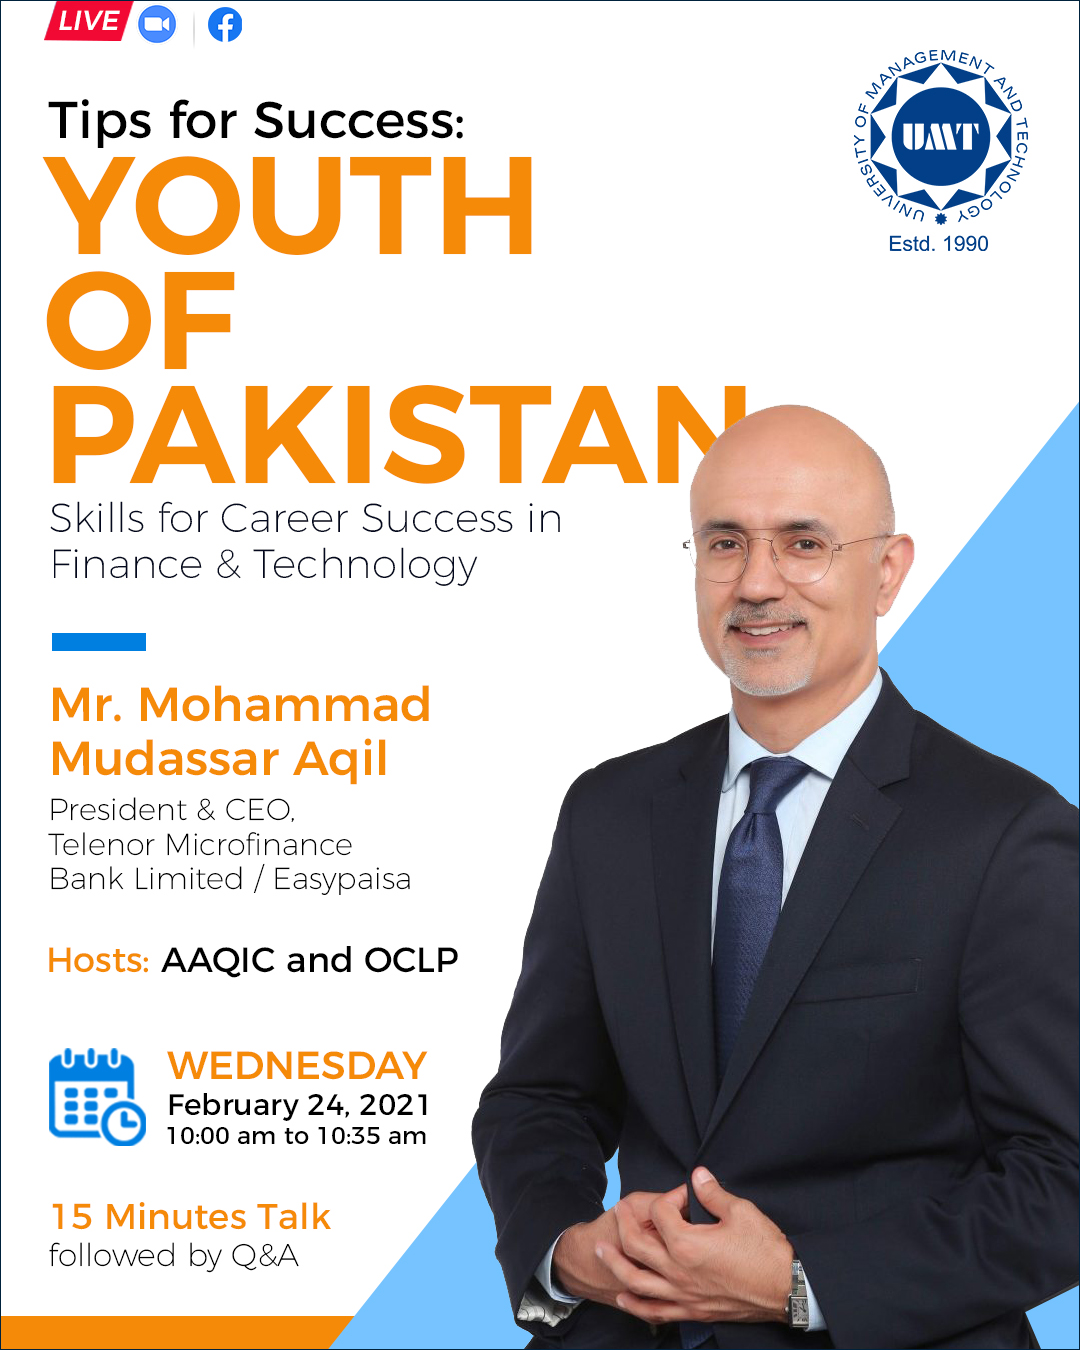 Future Leaders with Business Leaders - Mohammad Mudassar Aqil, President & CEO - EasyPaisa